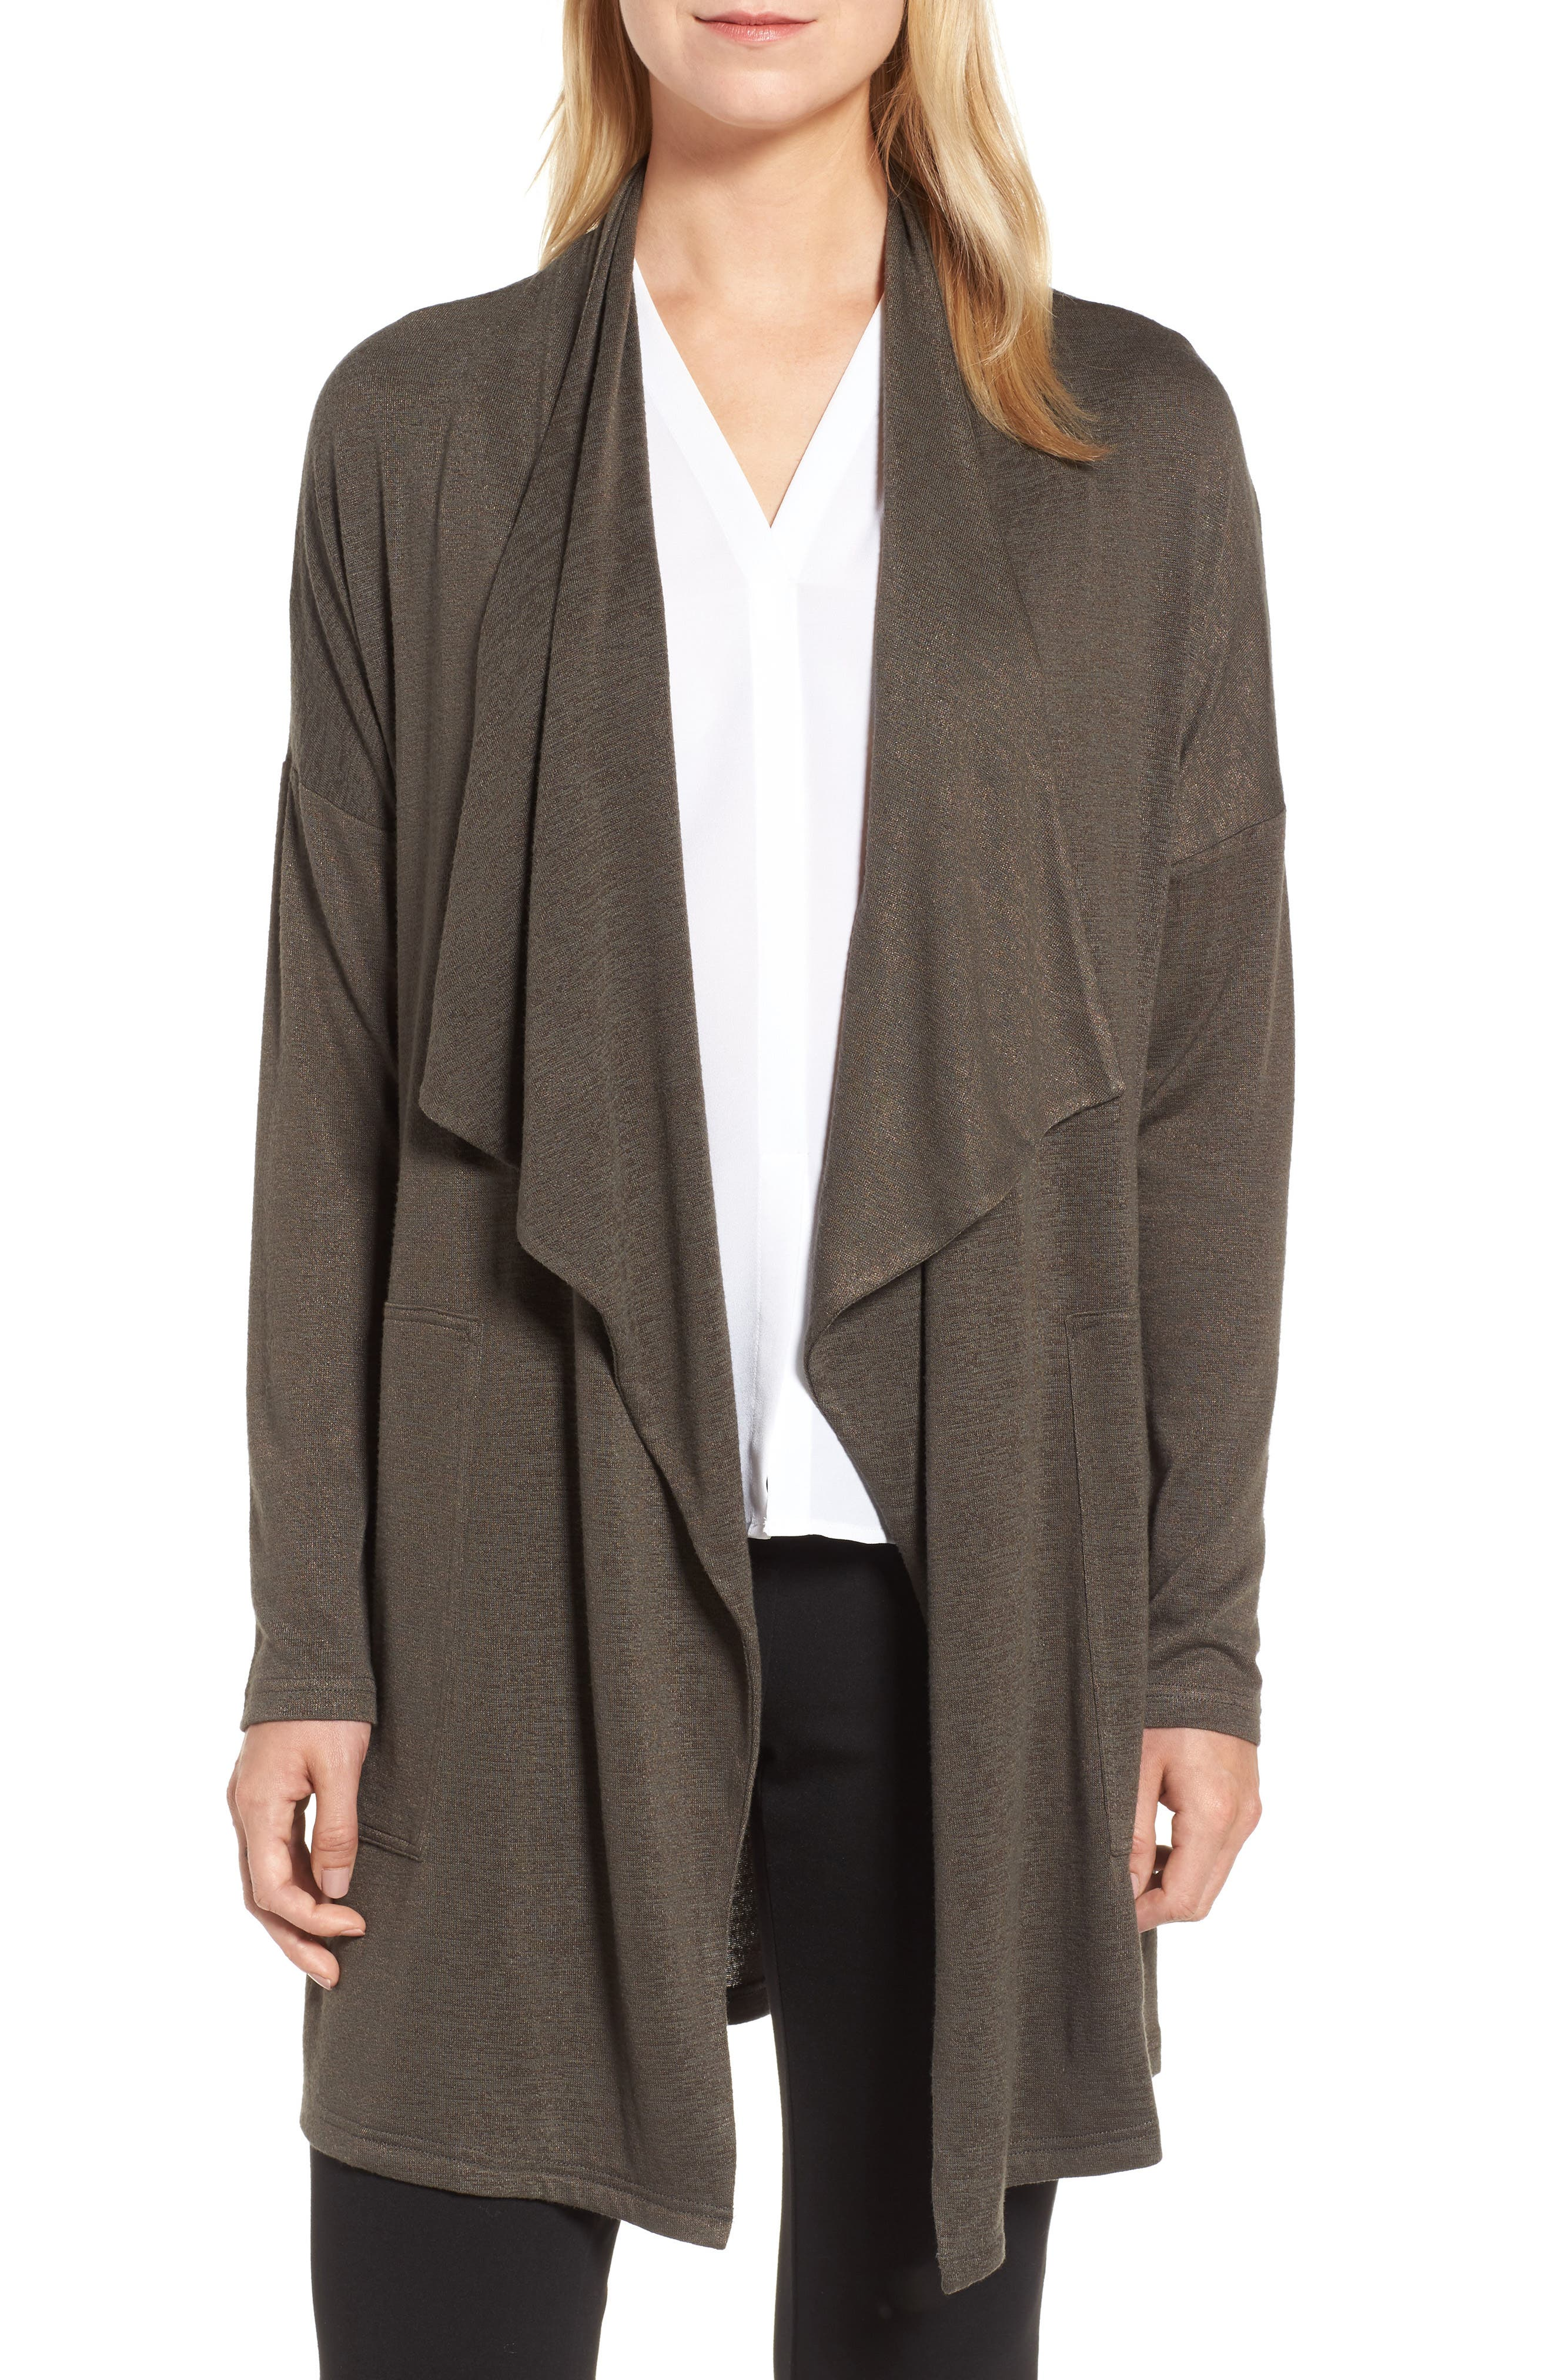 Every Occasion Drape Front Jacket,                             Main thumbnail 1, color,                             Terrene